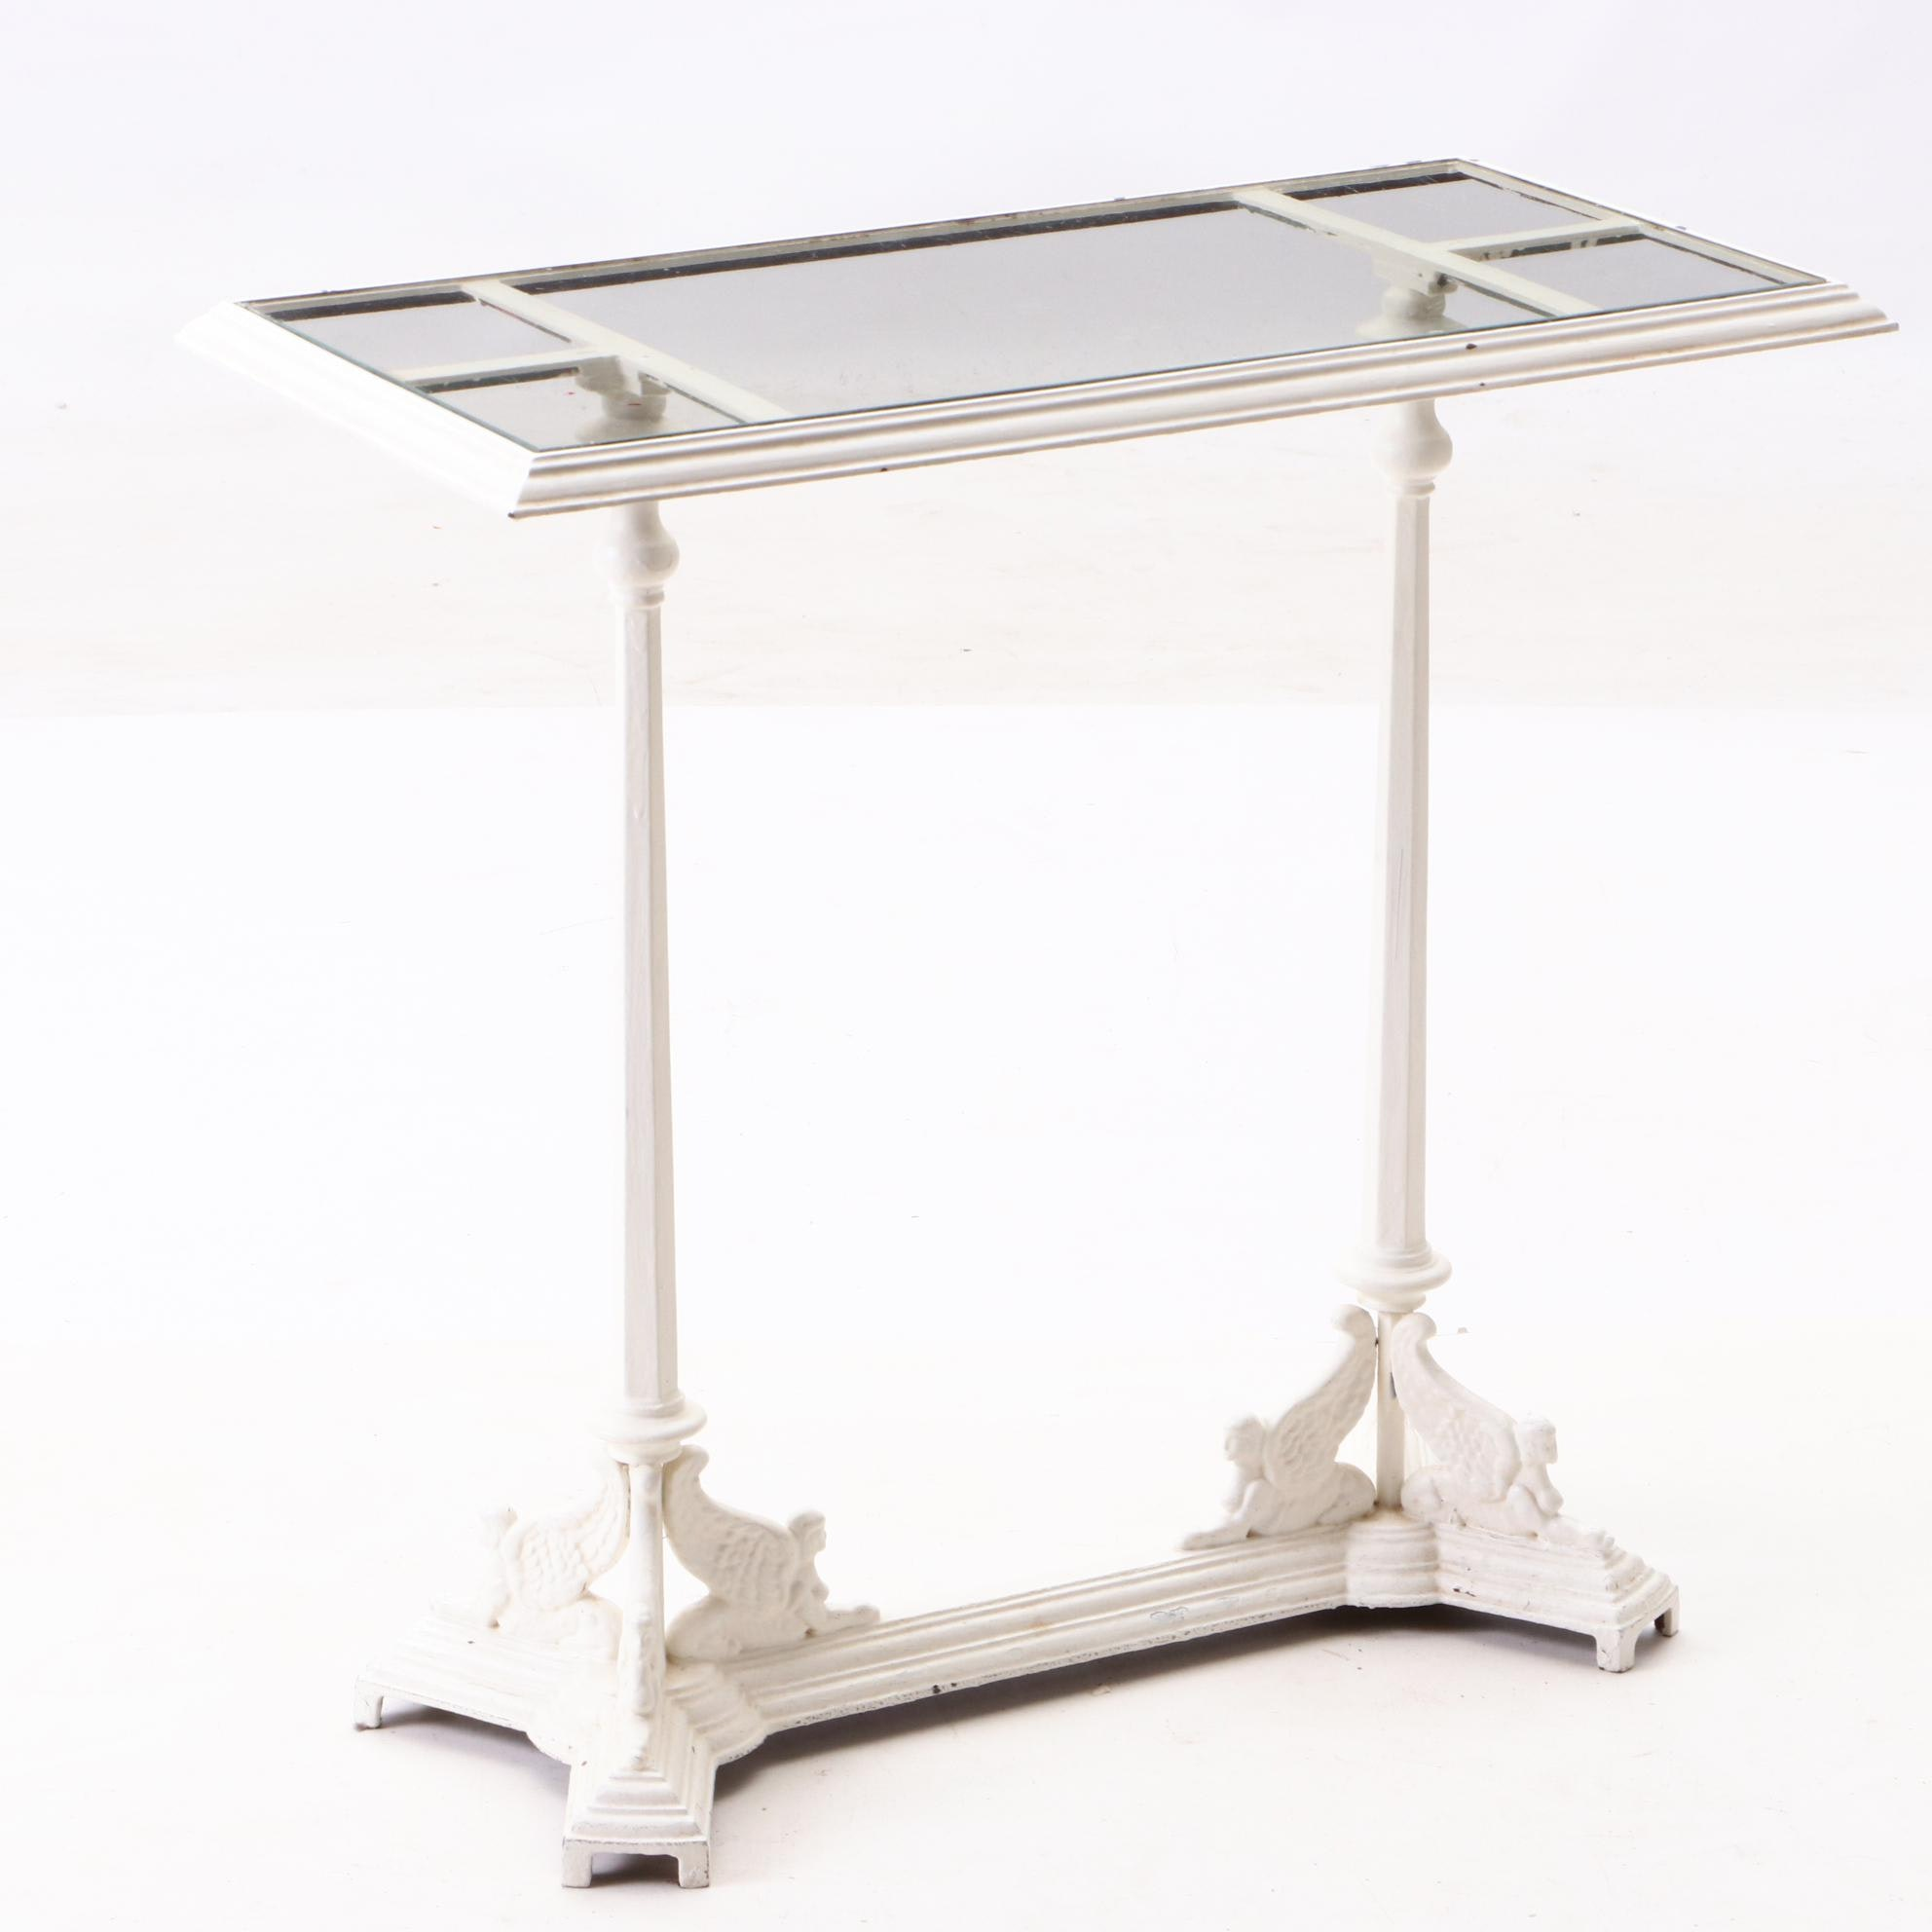 French Empire Style Painted Cast Iron Occasional Table, Mid-20th Century